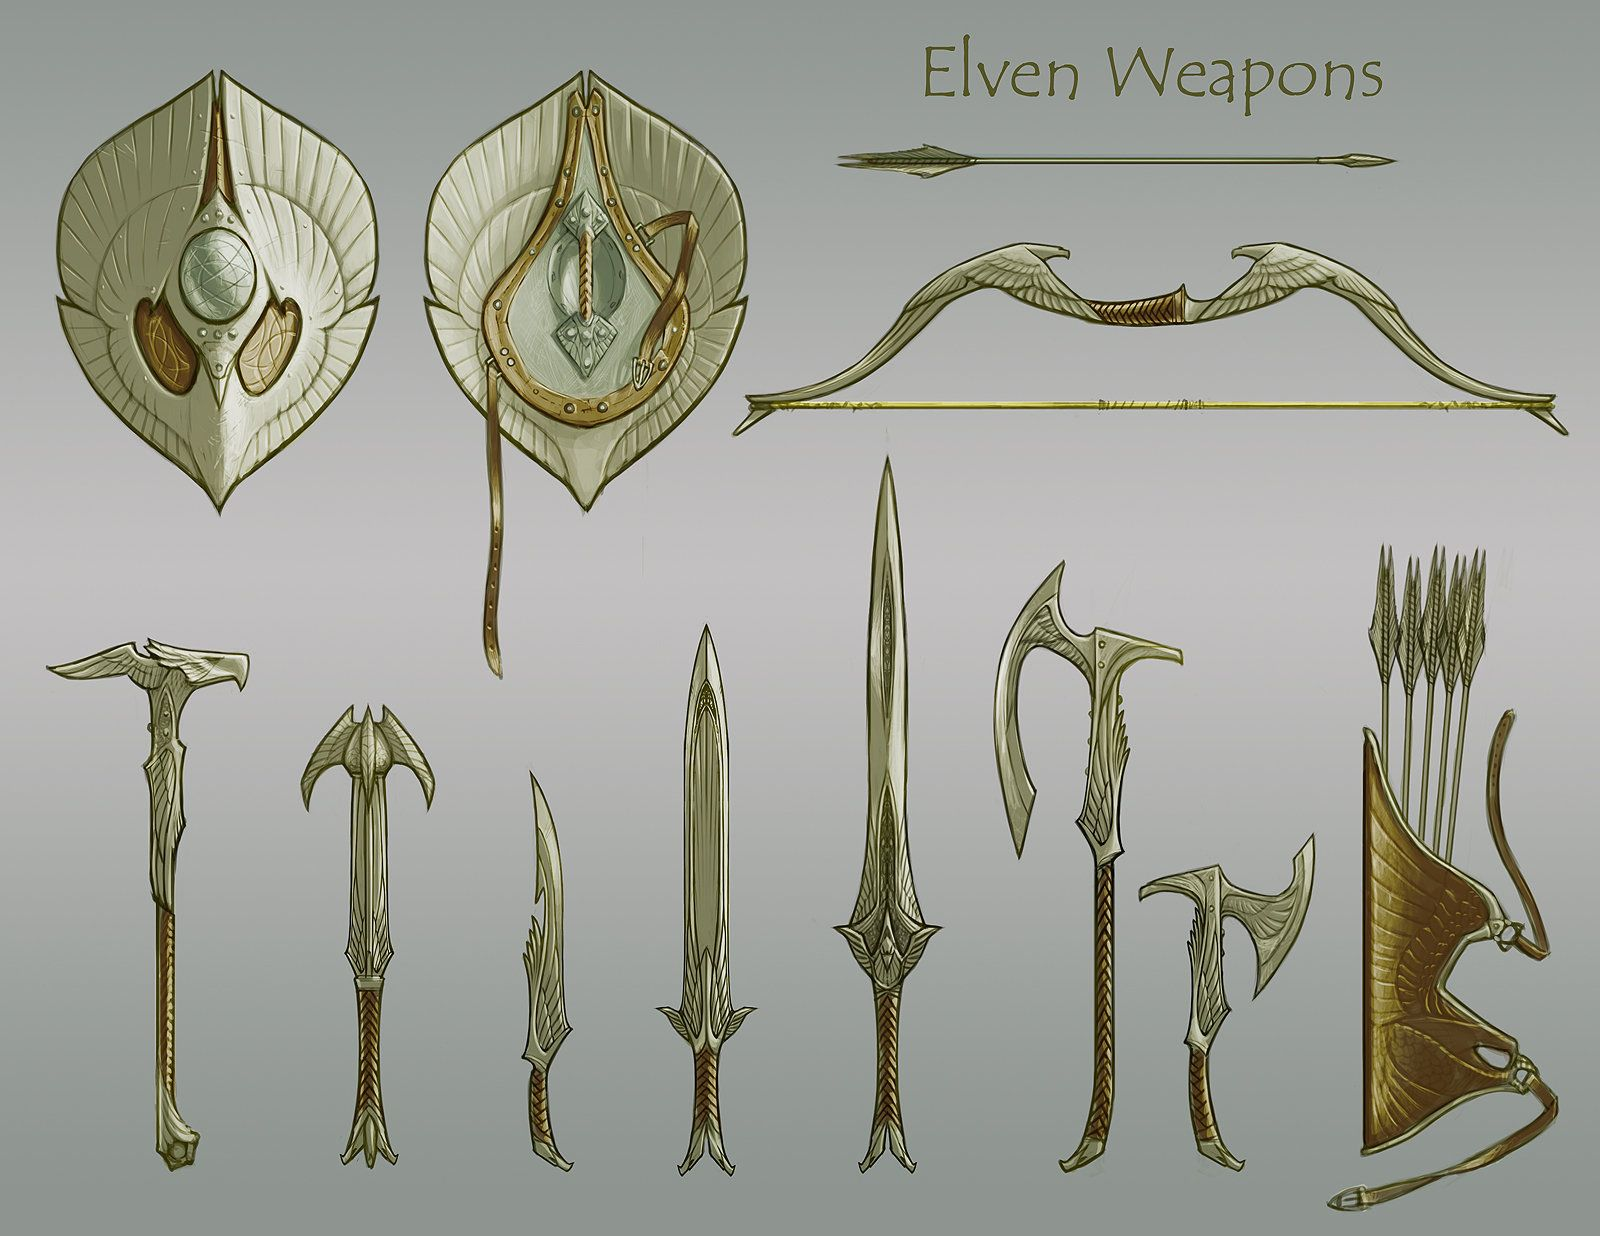 Pin by Kevin Morrell on Elf | Weapons, Fantasy weapons